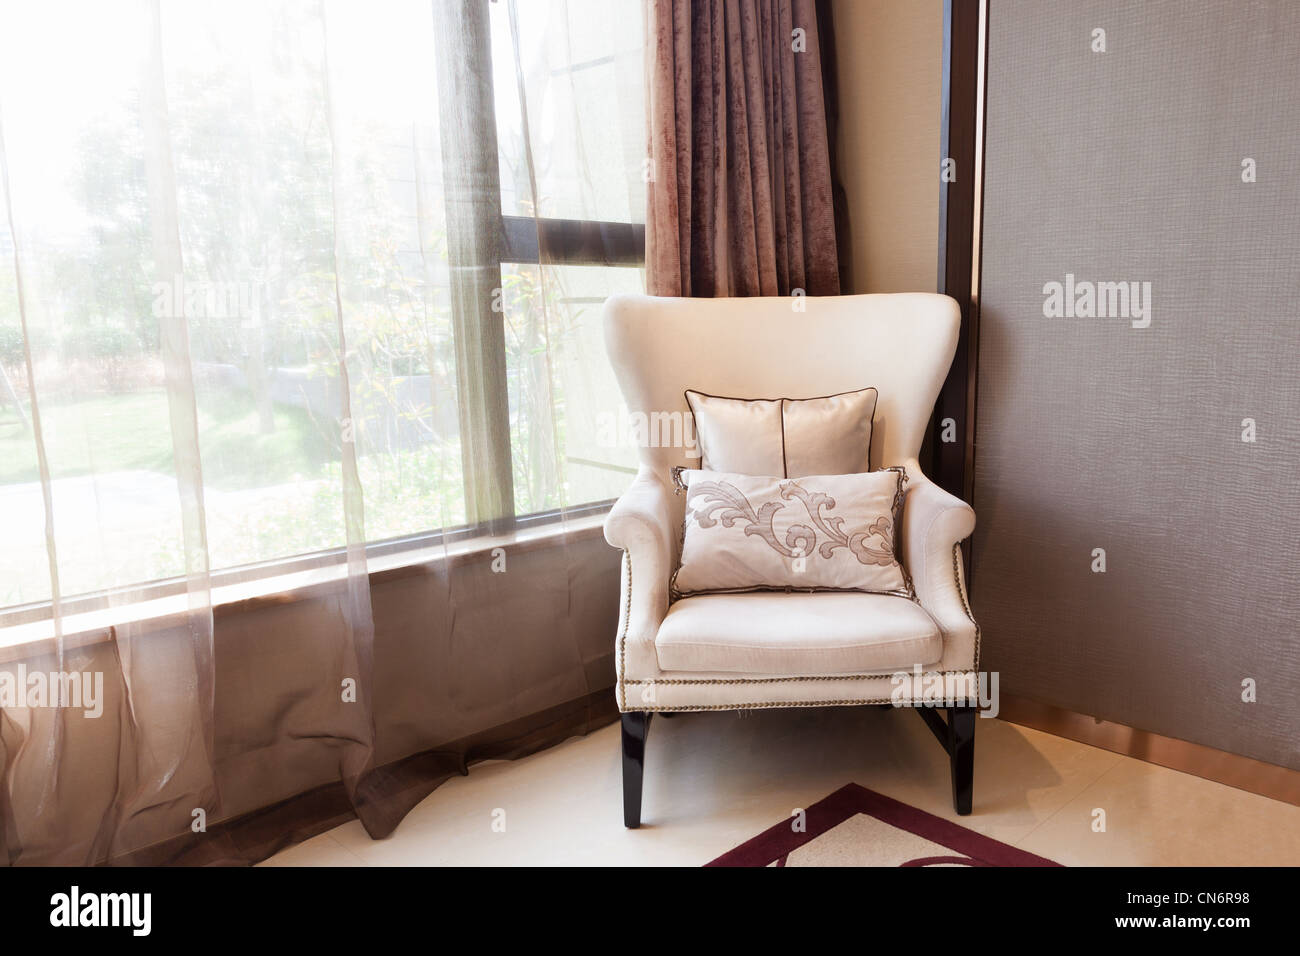 Armchair close to the window at a new interiors, through the window a small garden can be seen. - Stock Image